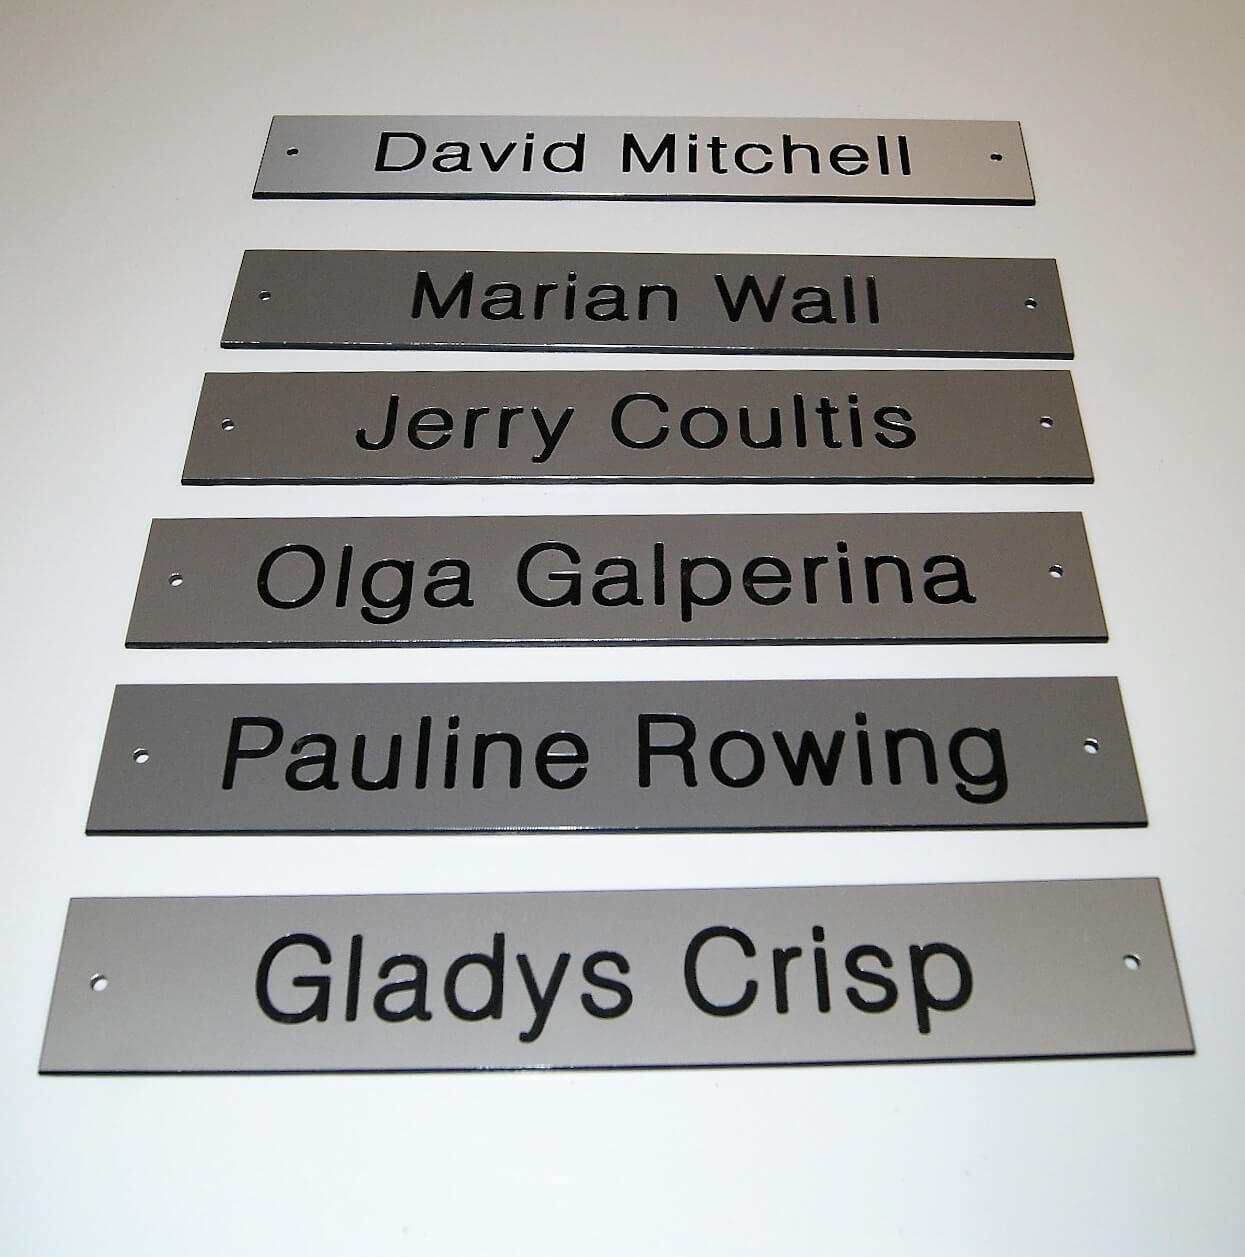 series of engraved nameplates